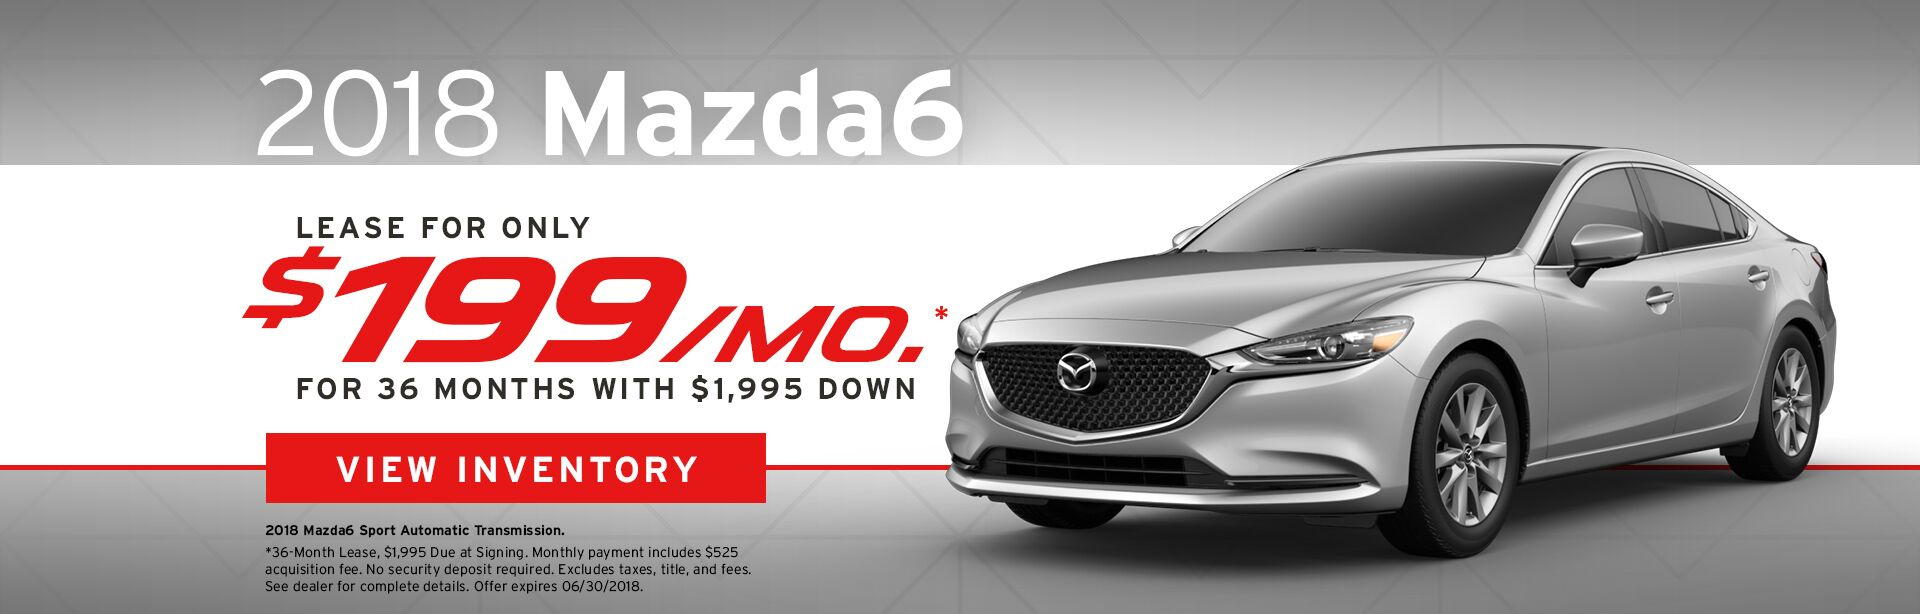 md fitzgerald annapolis dealer cars locations used dealership mazda in